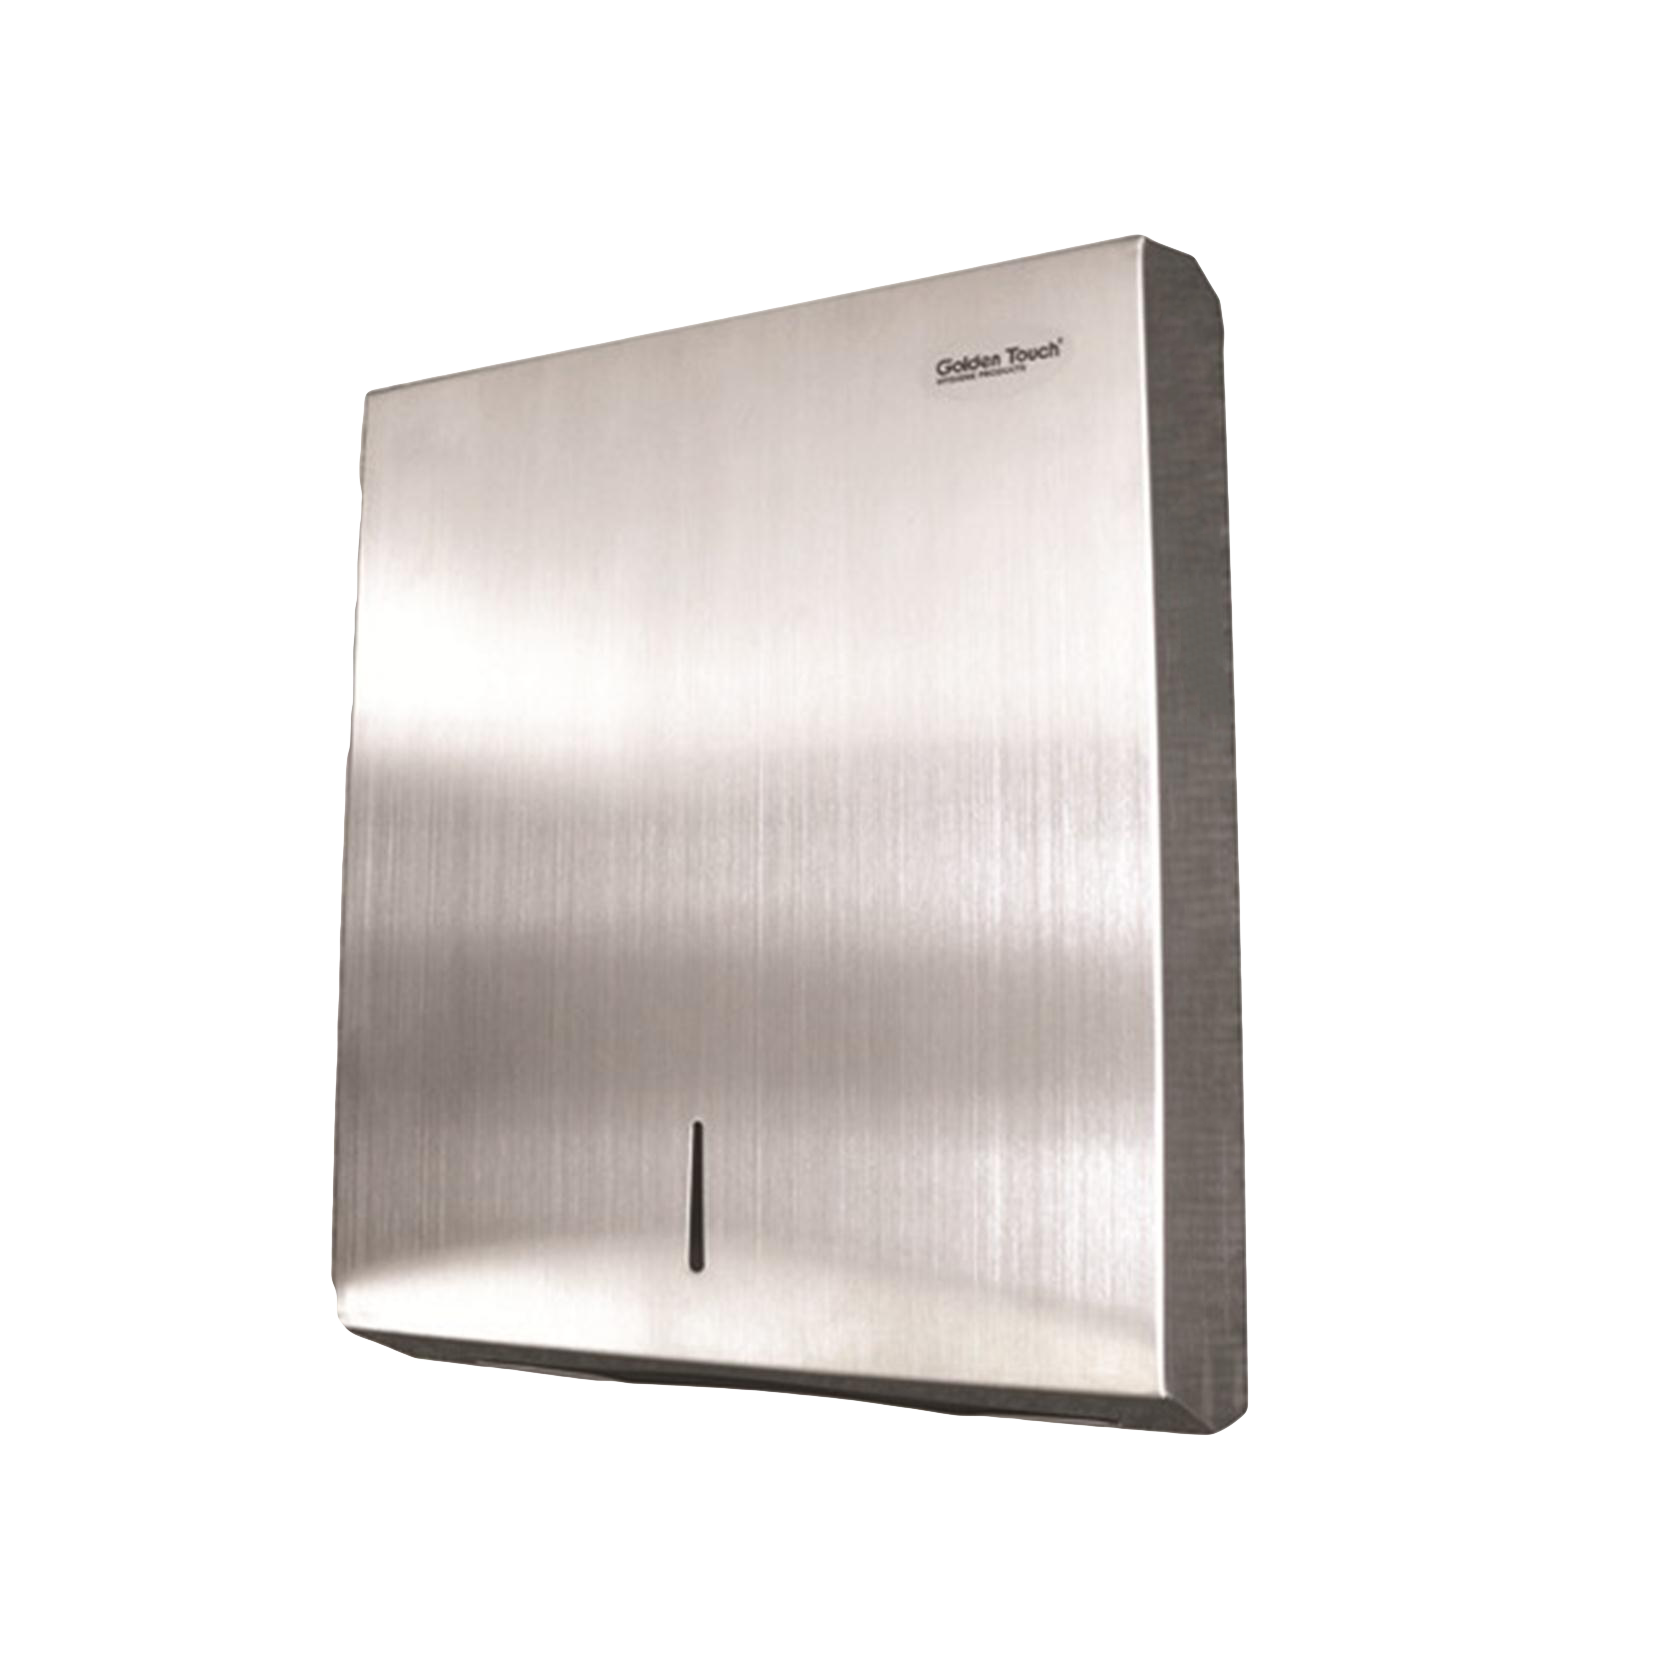 Hectoserve folded paper towel dispenser stainless steel